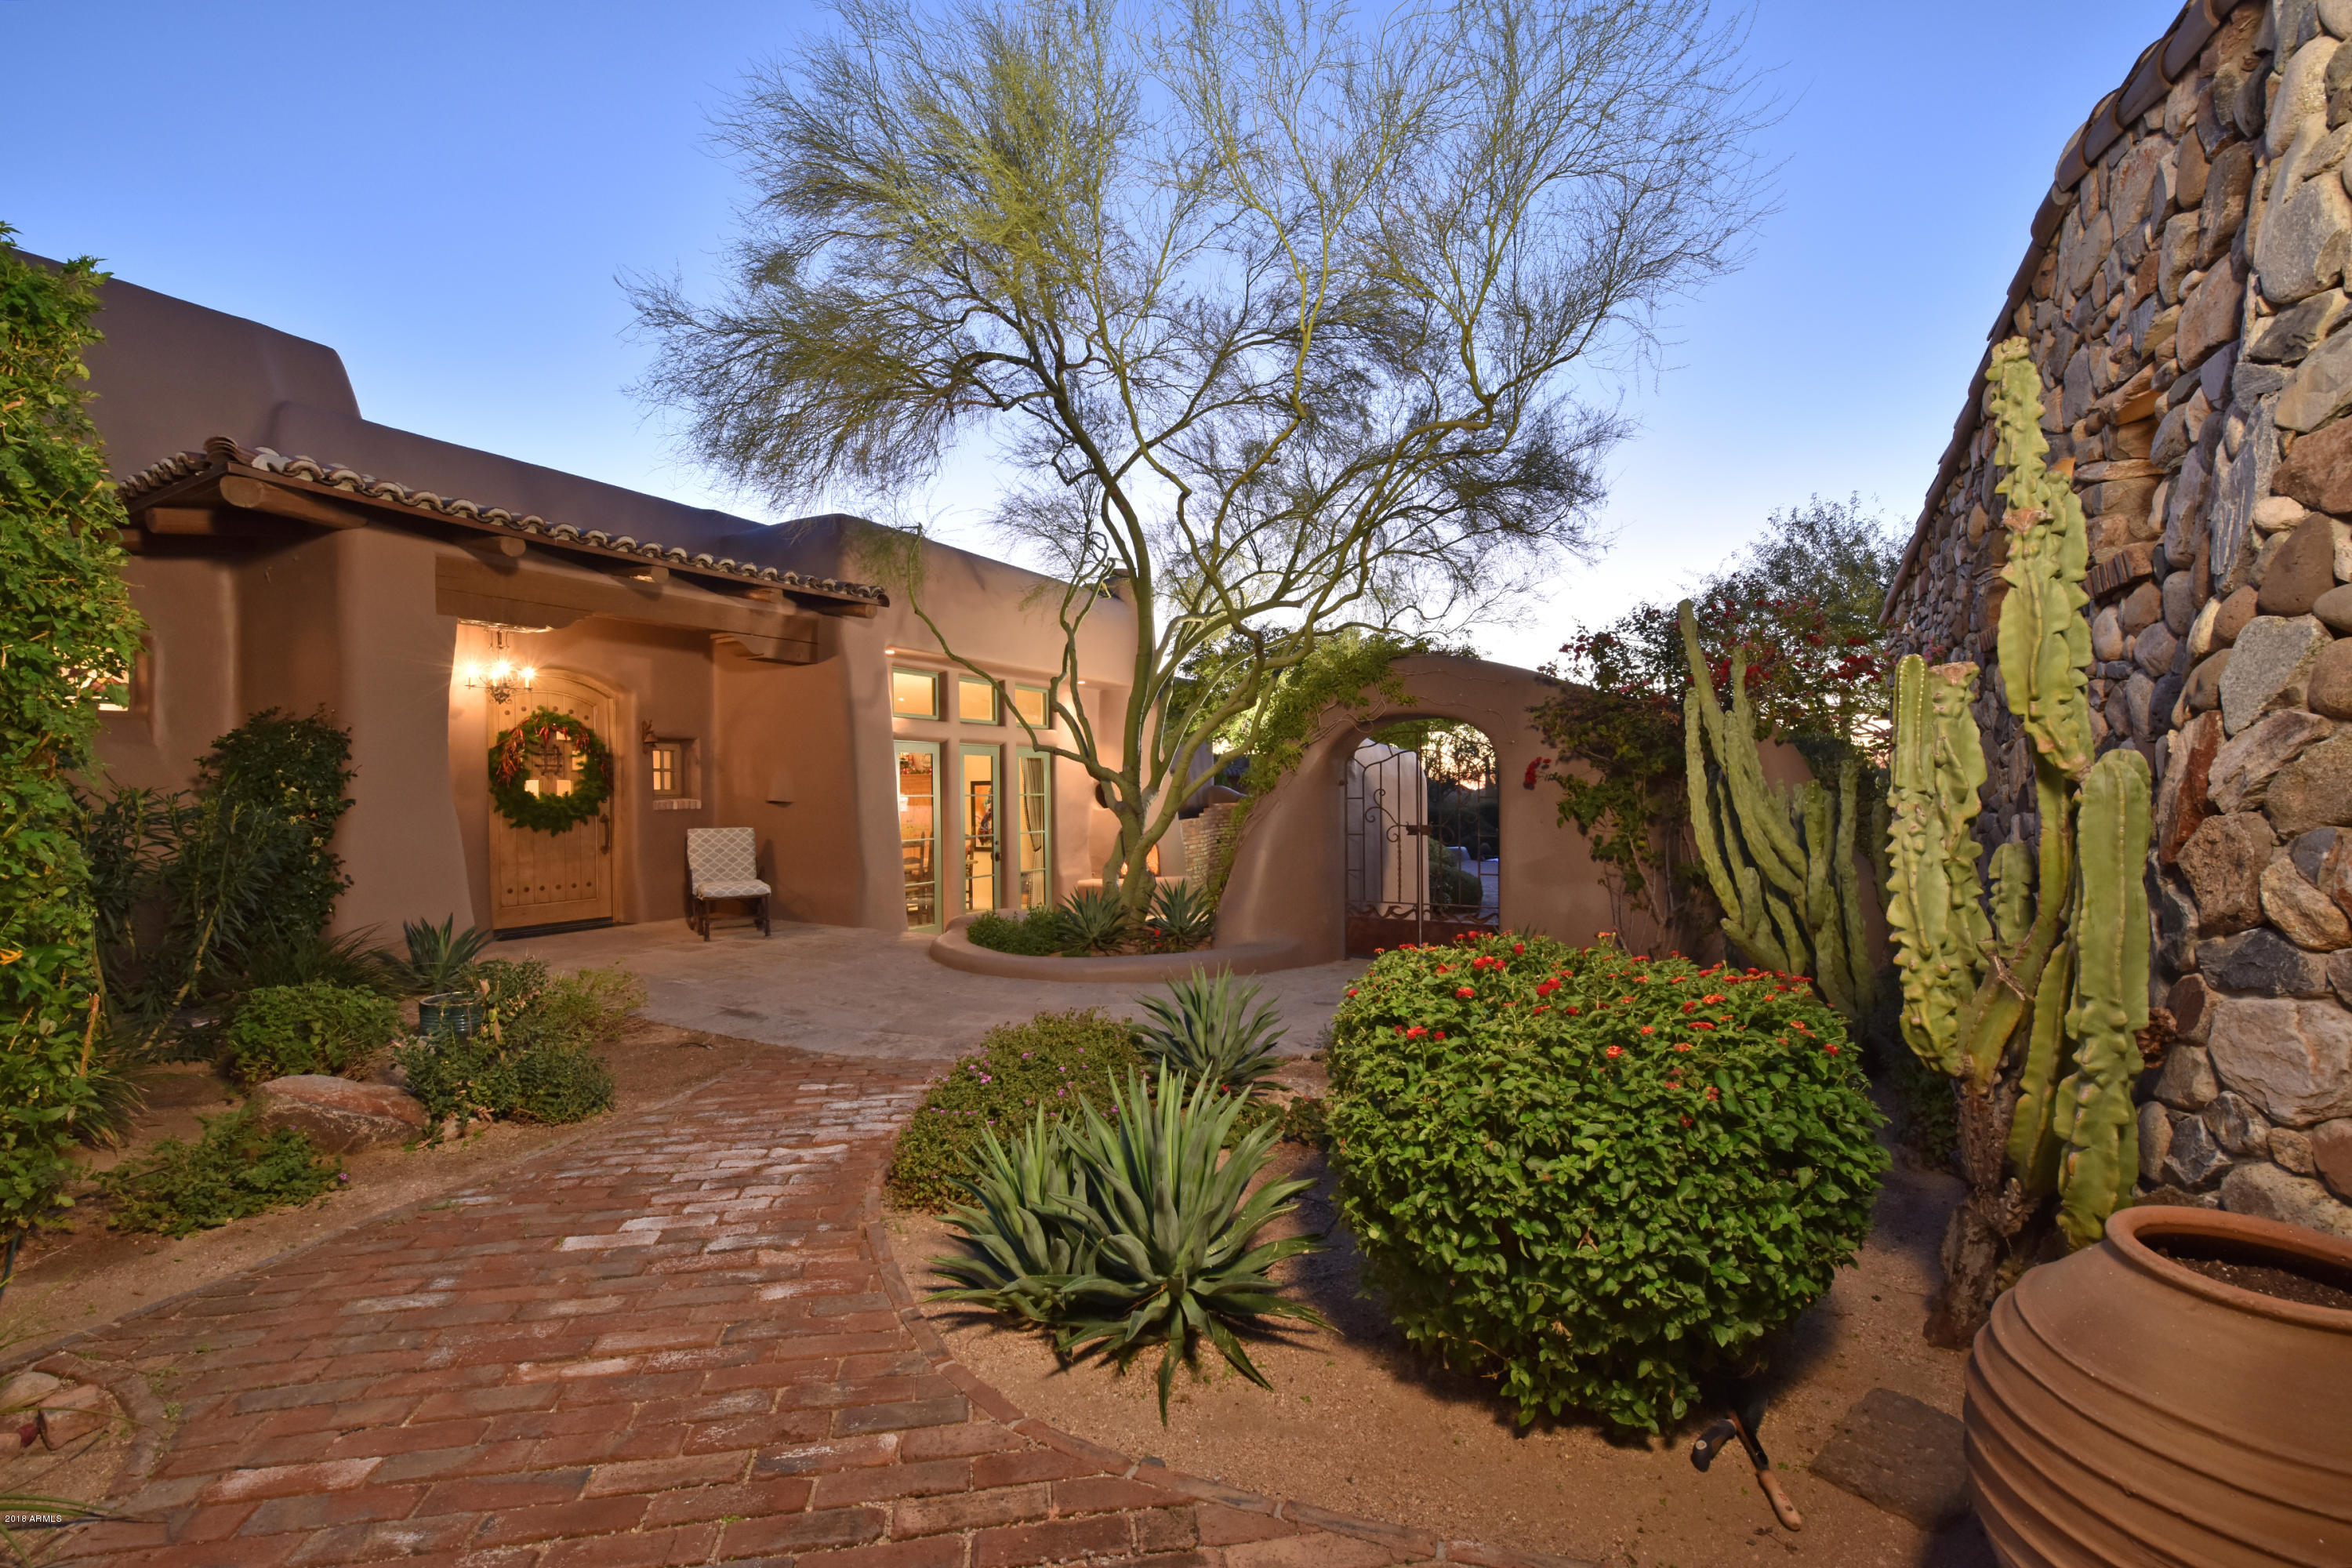 MLS 5861396 10040 E Happy Valley Road Unit 608, Scottsdale, AZ 85255 Scottsdale AZ Desert Highlands